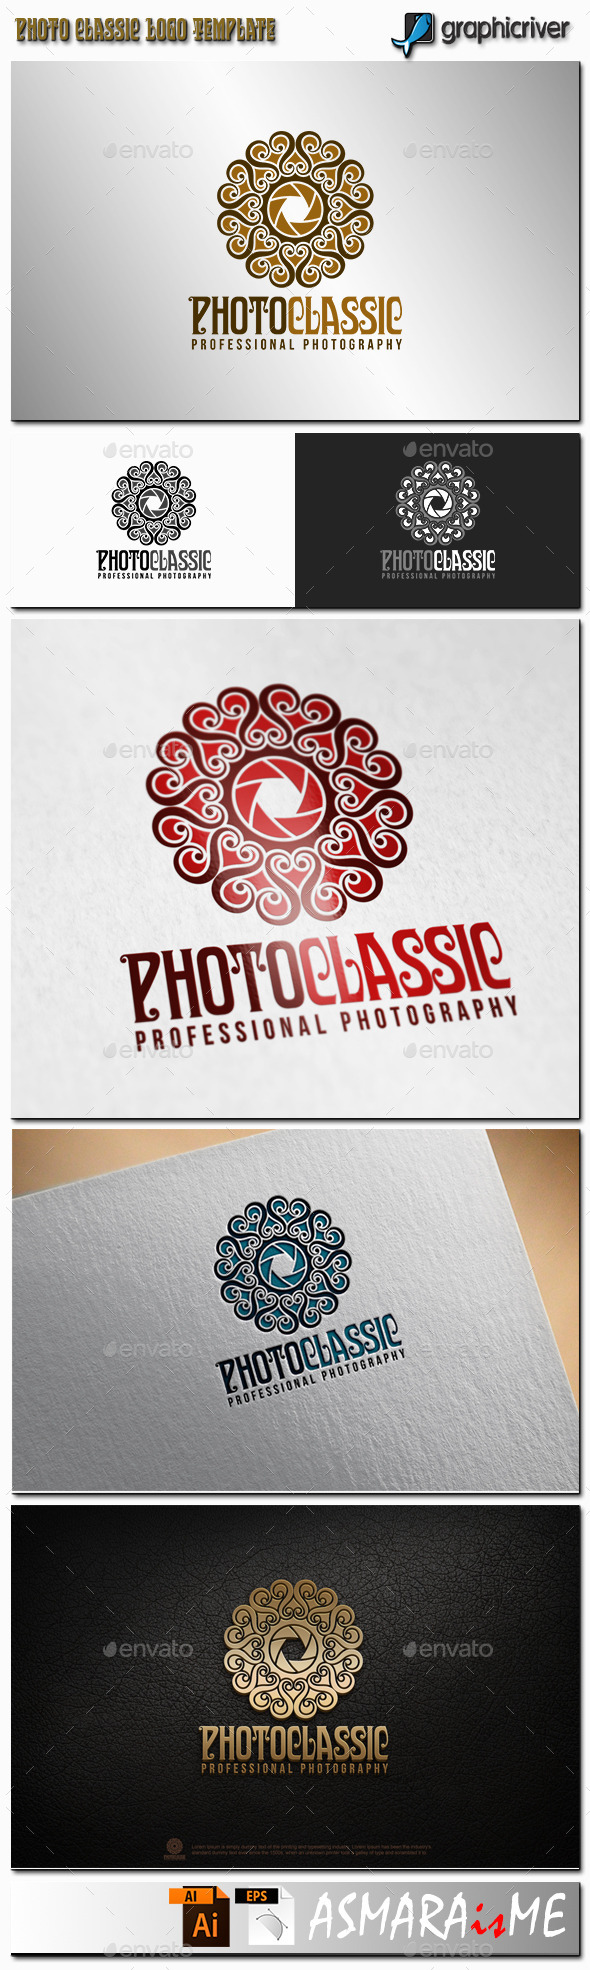 Camera Logo - Classic Photography Studio - Crests Logo Templates